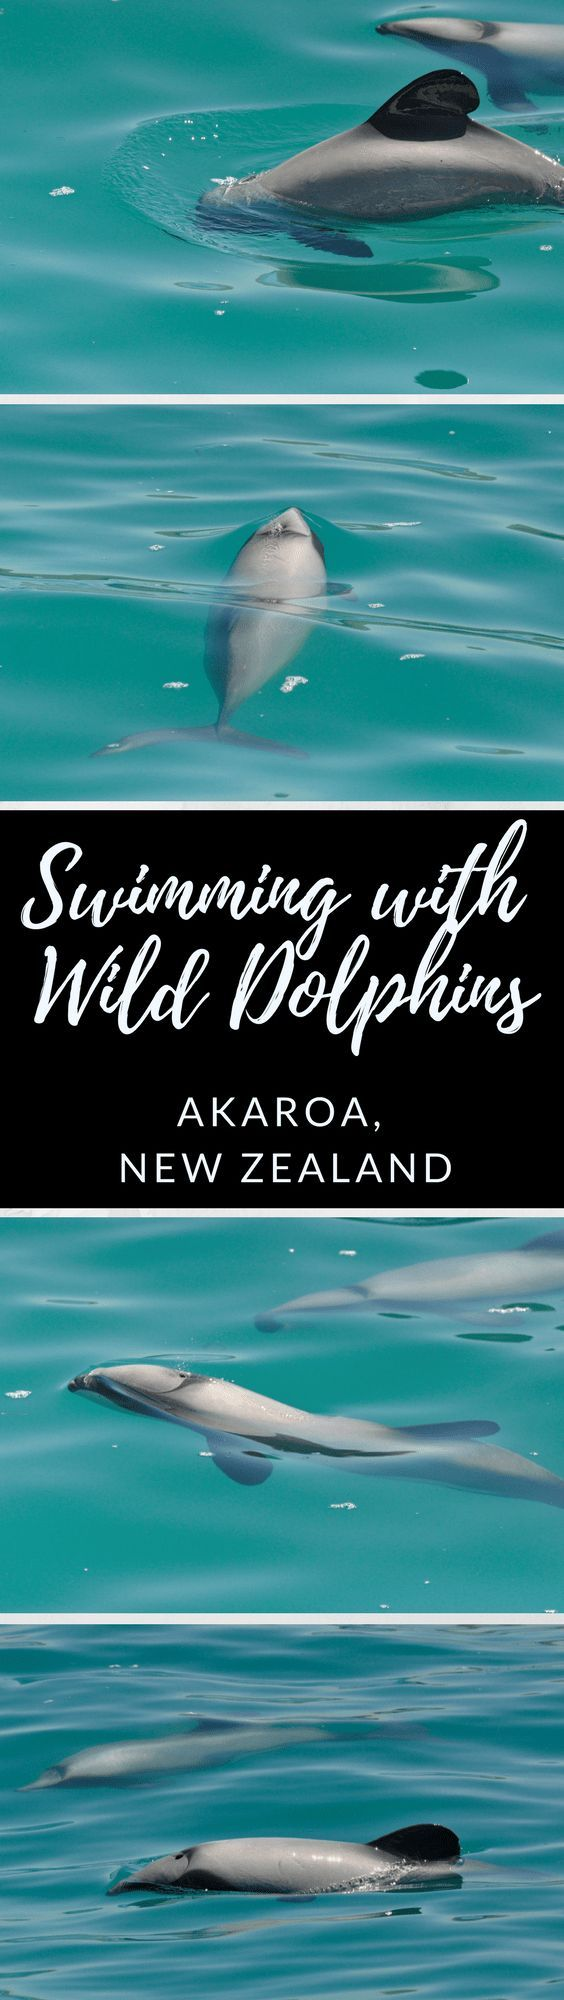 Swimming with dolphins in Akaroa is an incredible experience that shouldn't be missed! Akaroa is the best place to swim with dolphins in New Zealand. And it's the only place in the world to swim with the endangered Hector's Dolphins in the wild. Read more about the Akaroa dolphins here! #dolphins #diving #NewZealand #wilddolphins